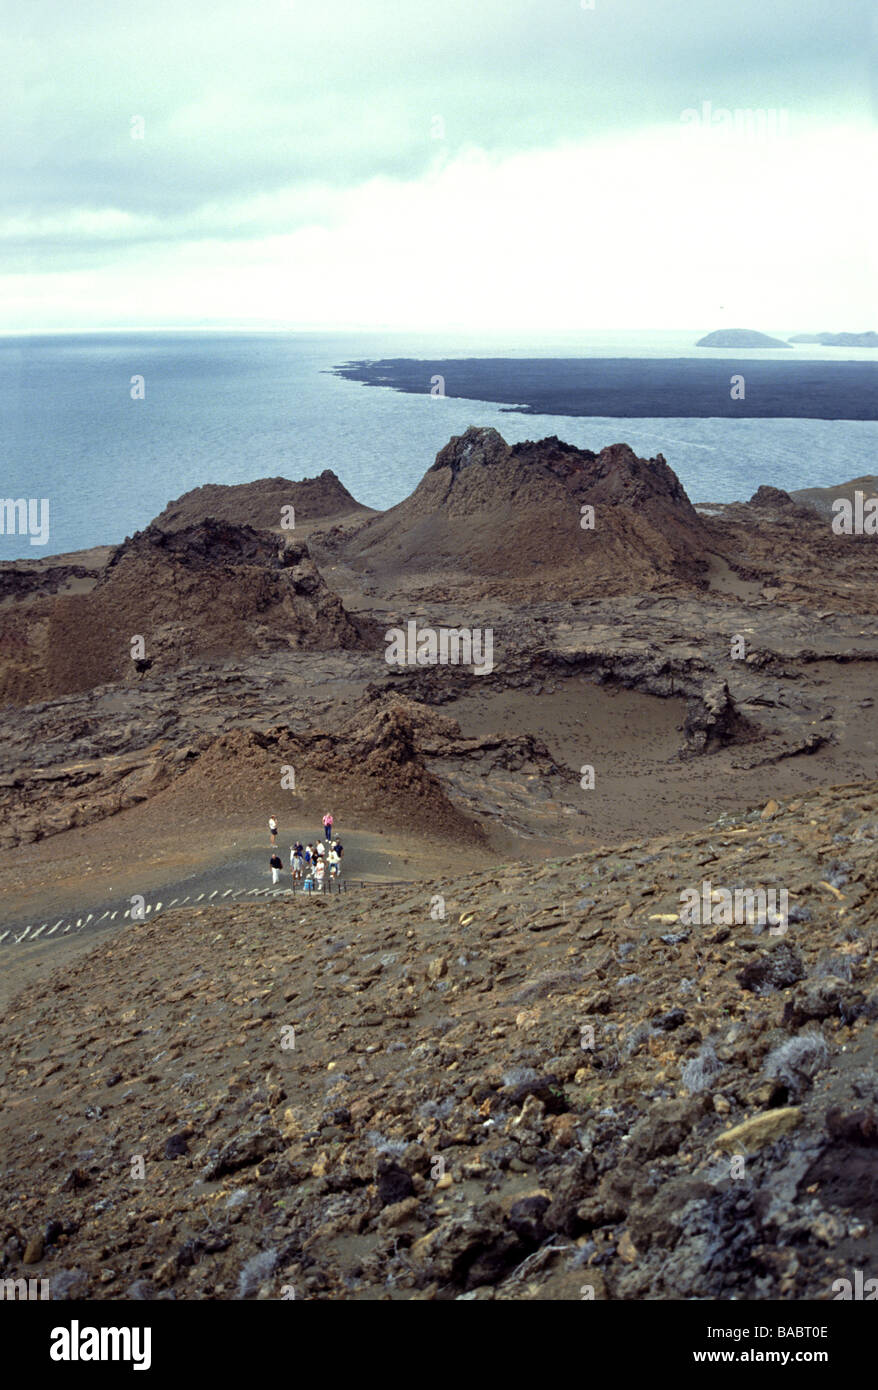 Galapagos Islands. Bartholomew Is. Volcanic splatter cones on the lower slopes of the island. - Stock Image